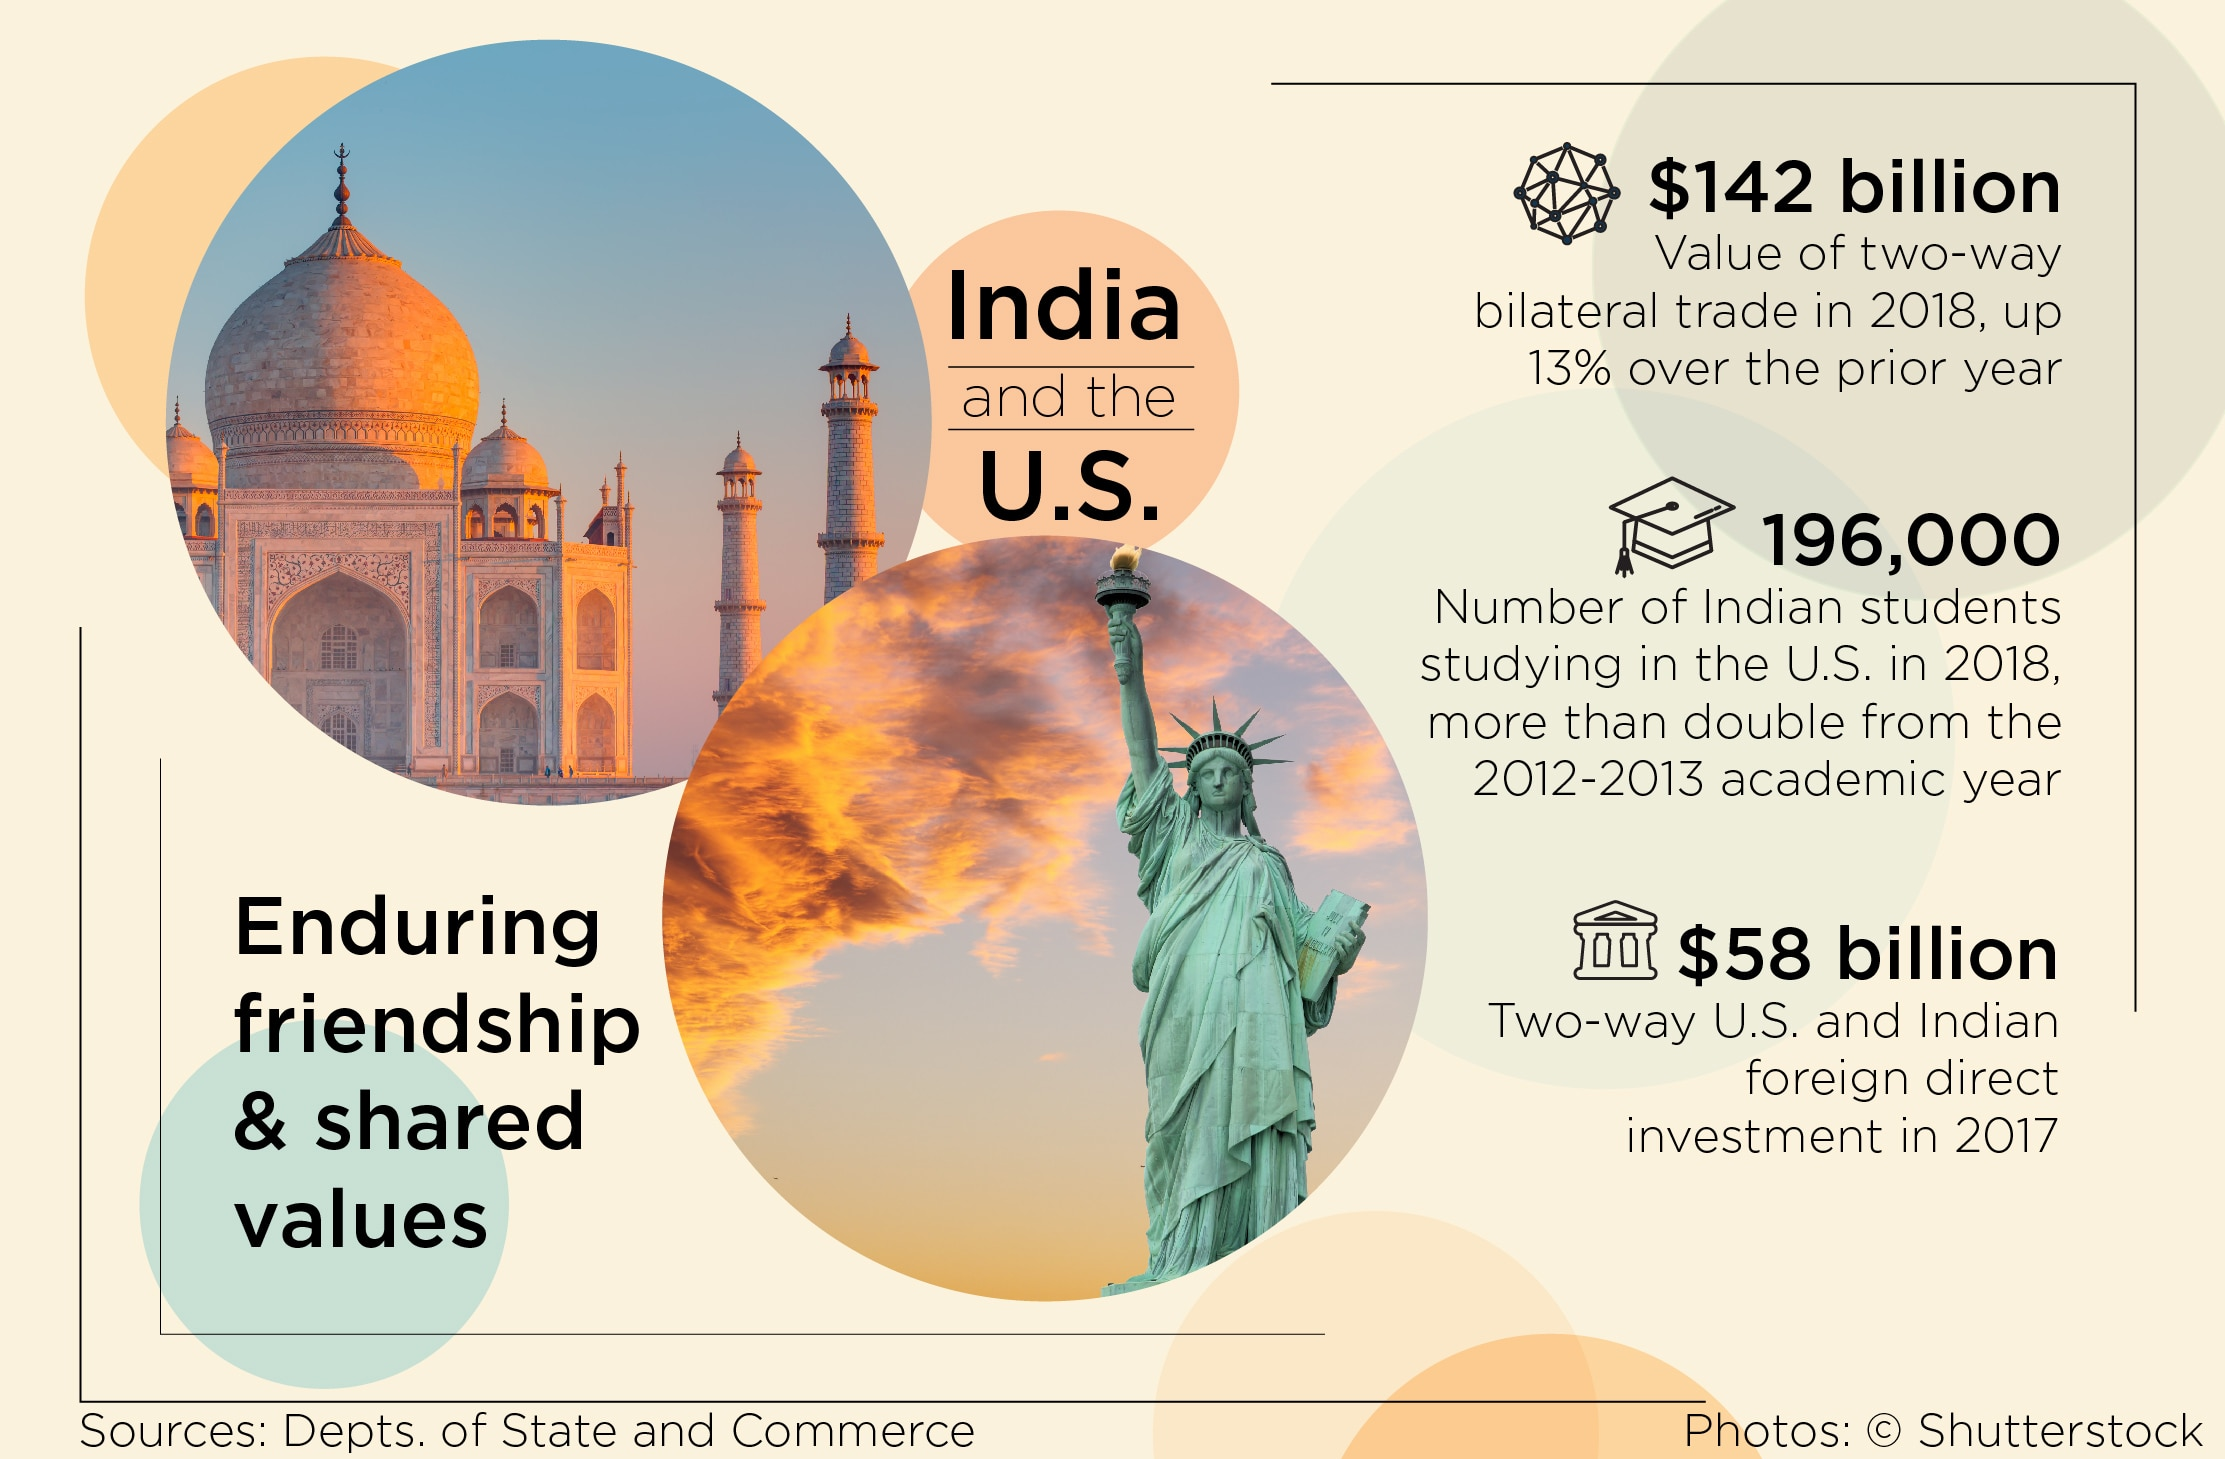 Statistics about U.S.-India ties. Sources: Depts. of State and Commerce (State Dept./S. Gemeny Wilkinson)